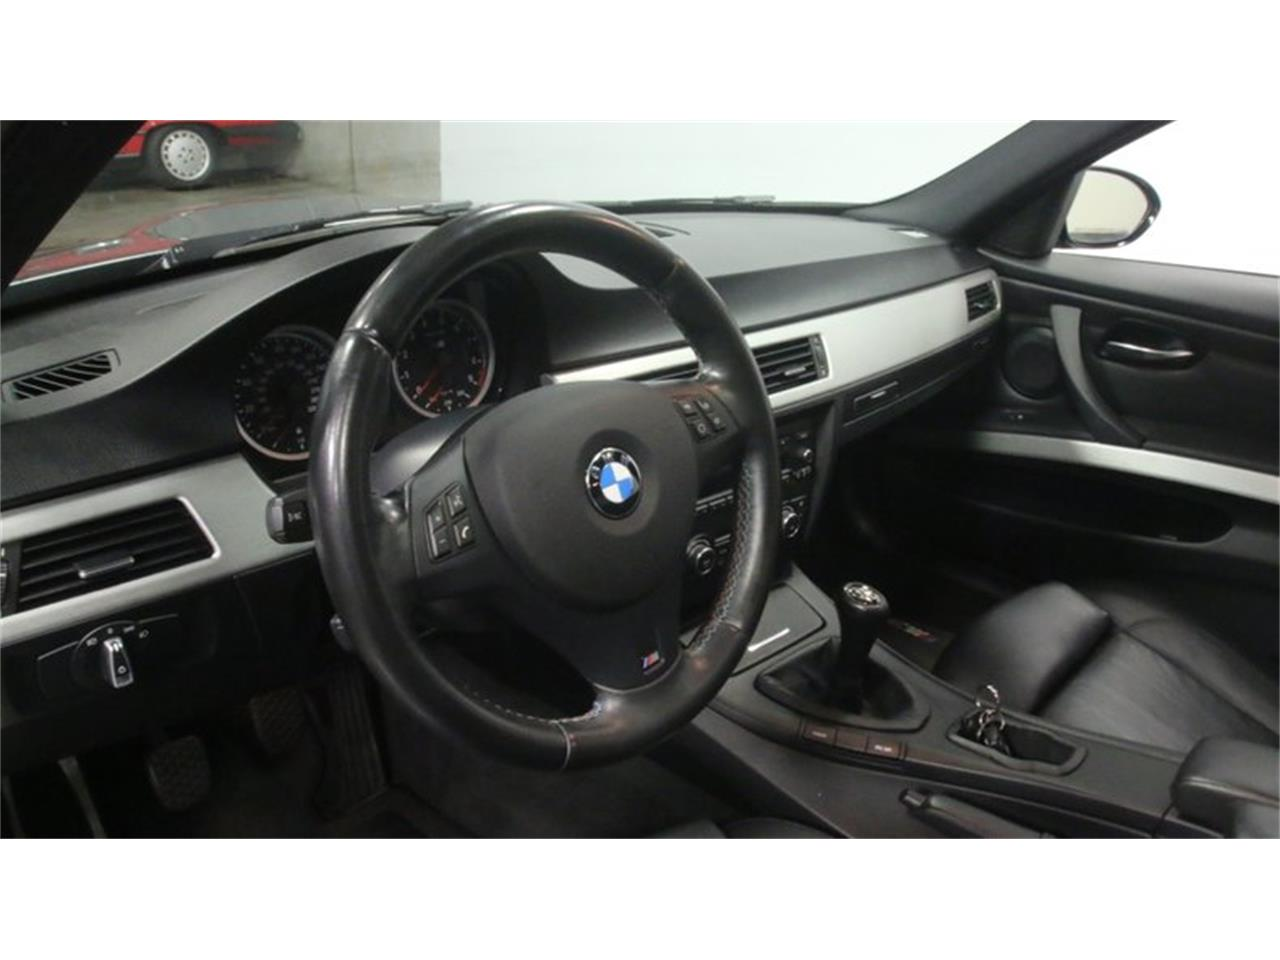 2010 BMW M3 for sale in Lithia Springs, GA – photo 42